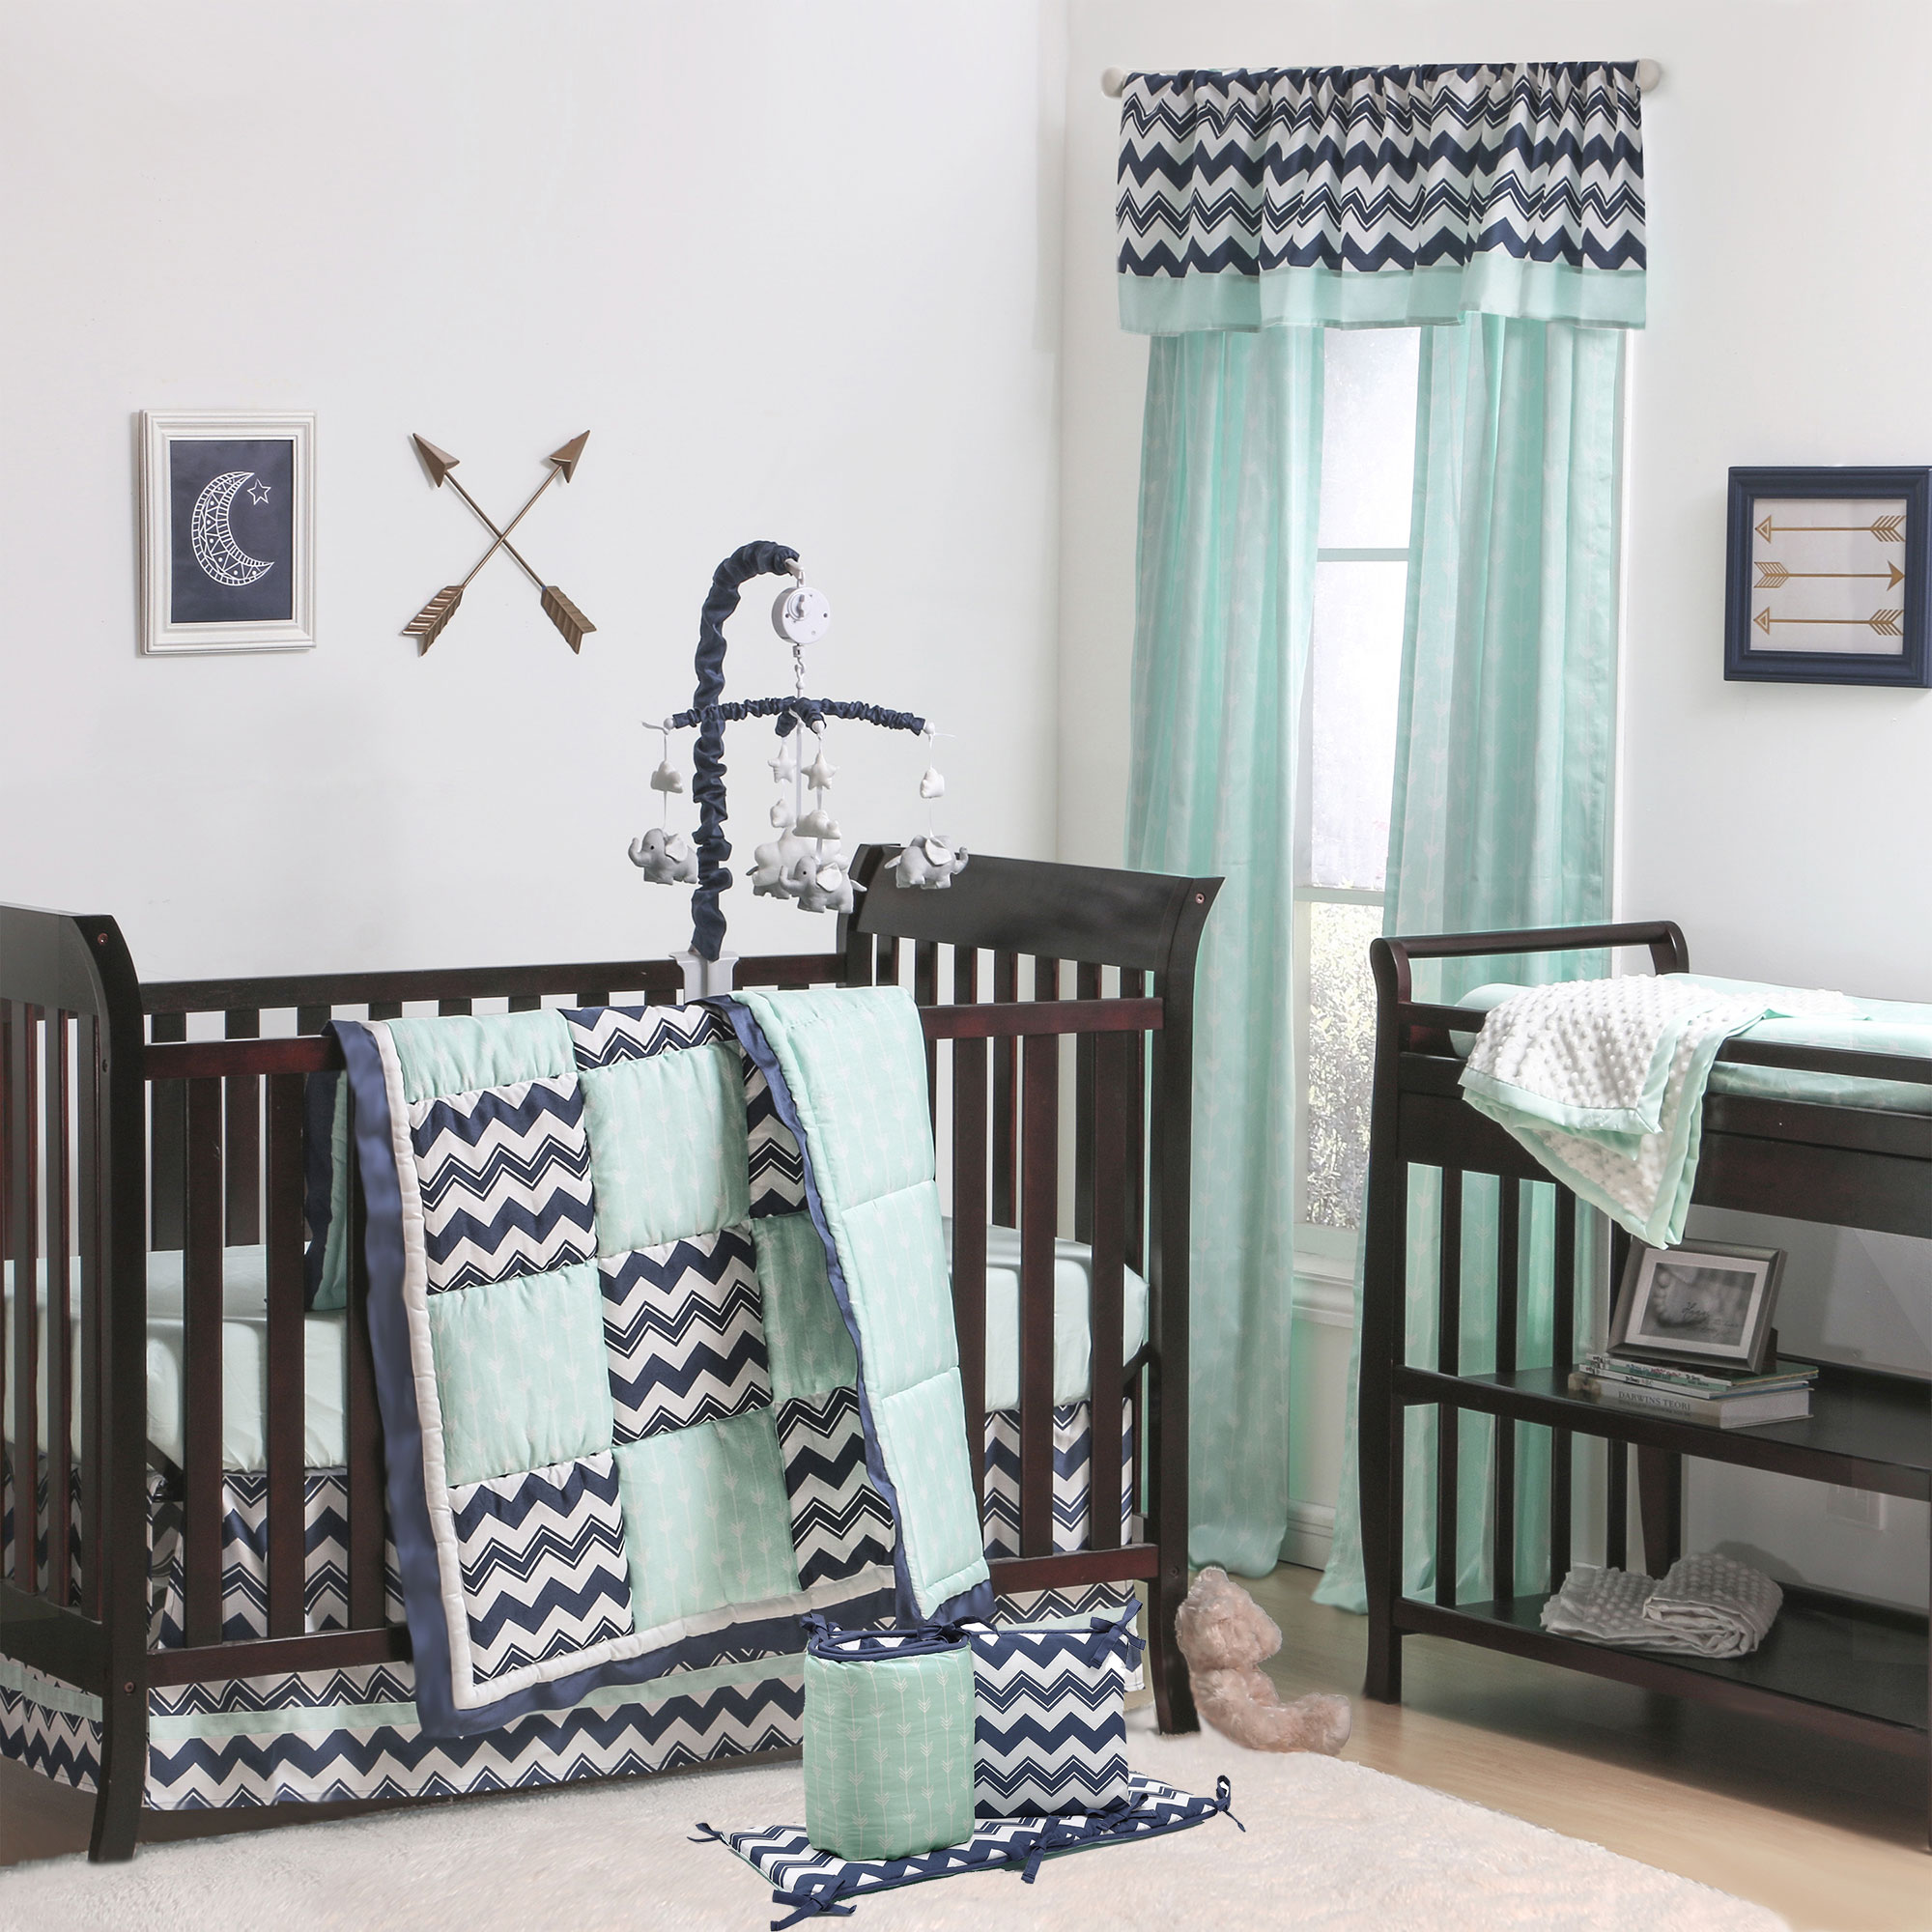 The Peanut Shell 5 Piece Baby Crib Bedding Set - Navy Blue Zig Zag Geometric and Mint Green Arrow Print - 100% Cotton Quilt, Bumper, Dust Ruffle, Fitted Sheet, and Mobile